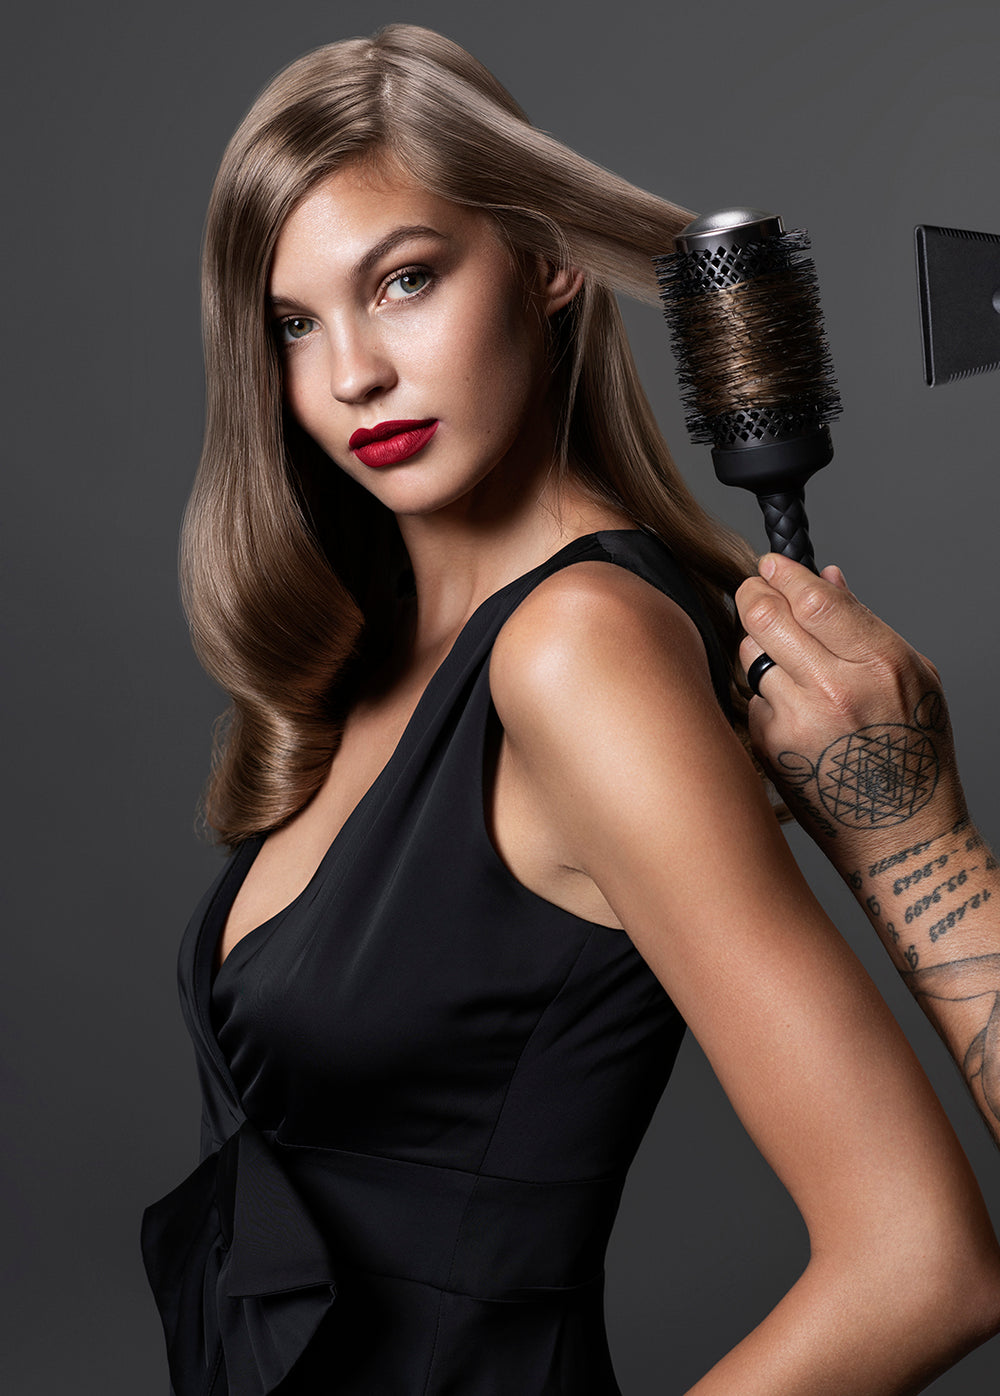 Fromm Pro Professional Salon Elite Thermal Black Ceramic Round Hair Brush used on blonde model with curls, red lipstick, and black dress